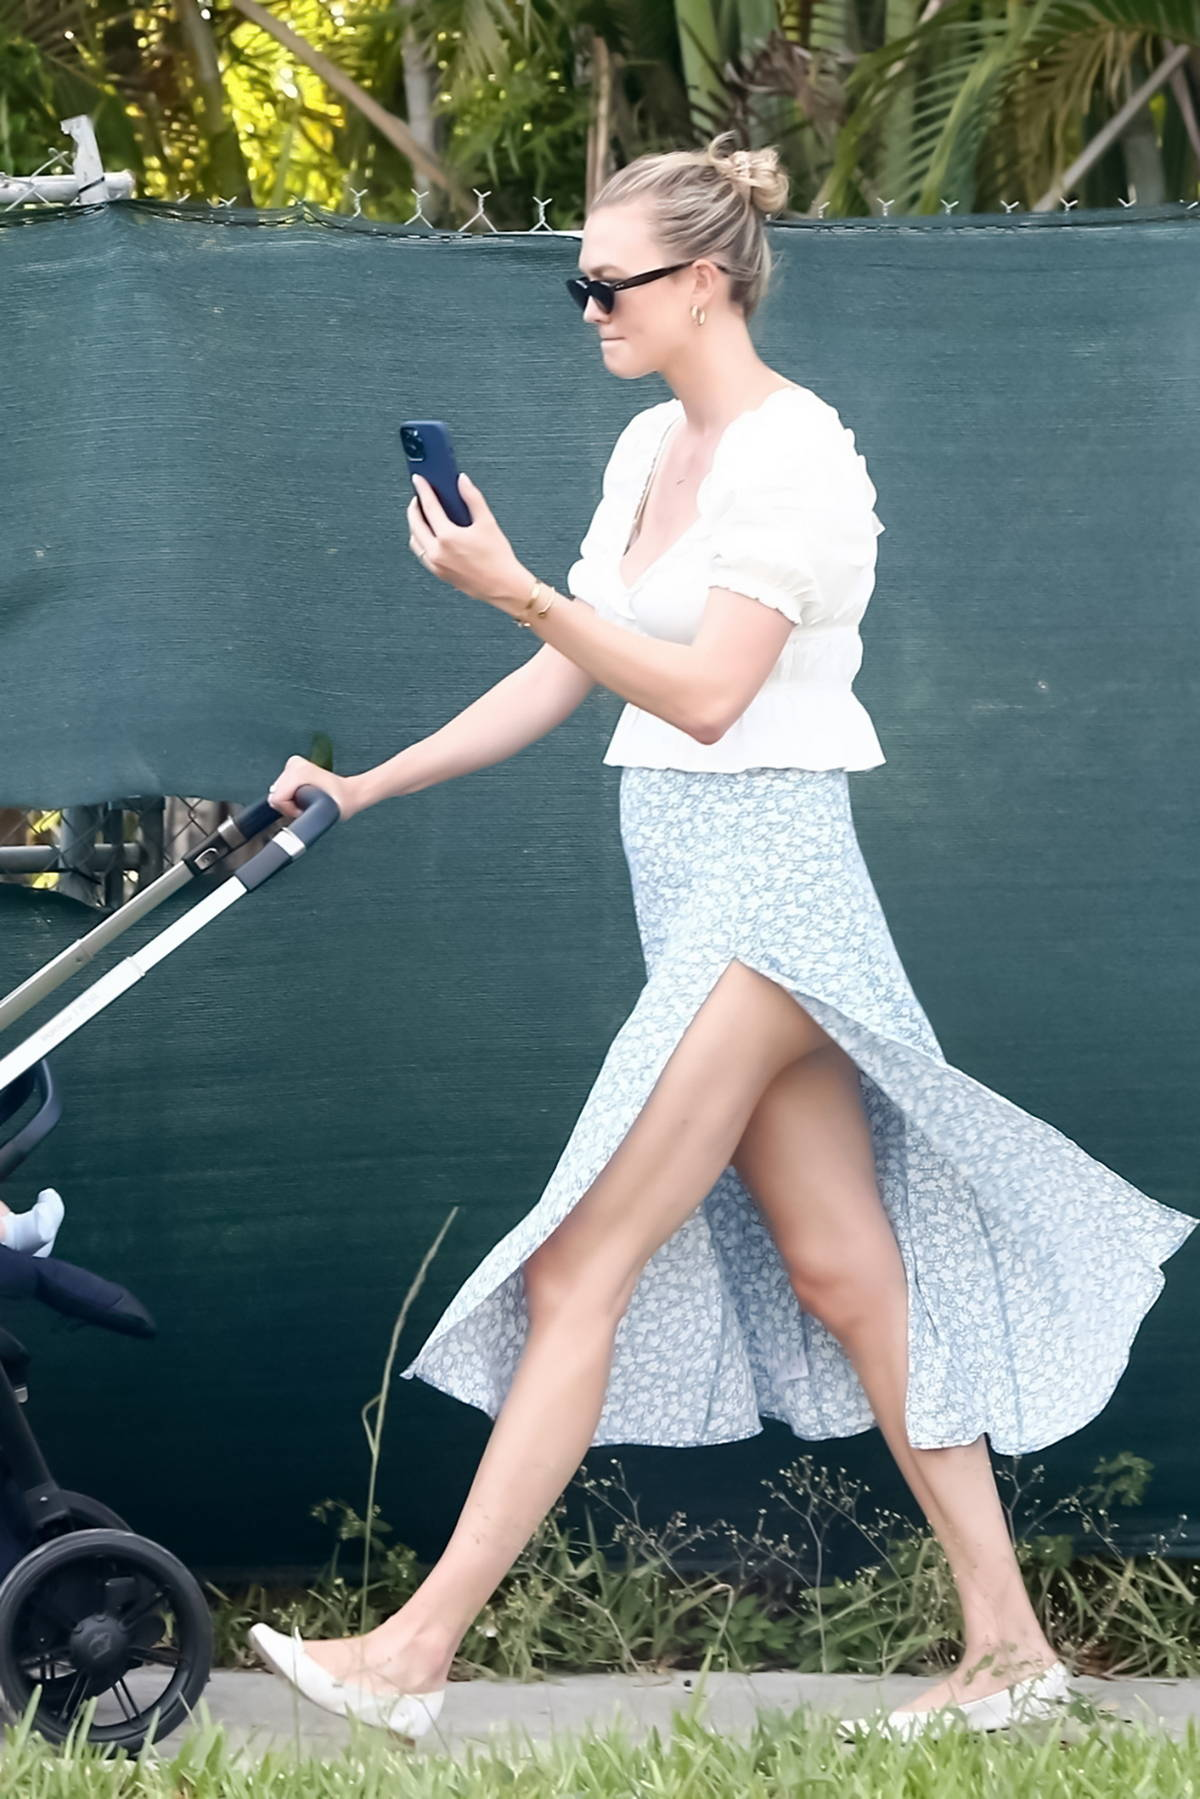 Karlie Kloss wears a white top and floral print skirt while out for an afternoon walk with her son in Miami, Florida